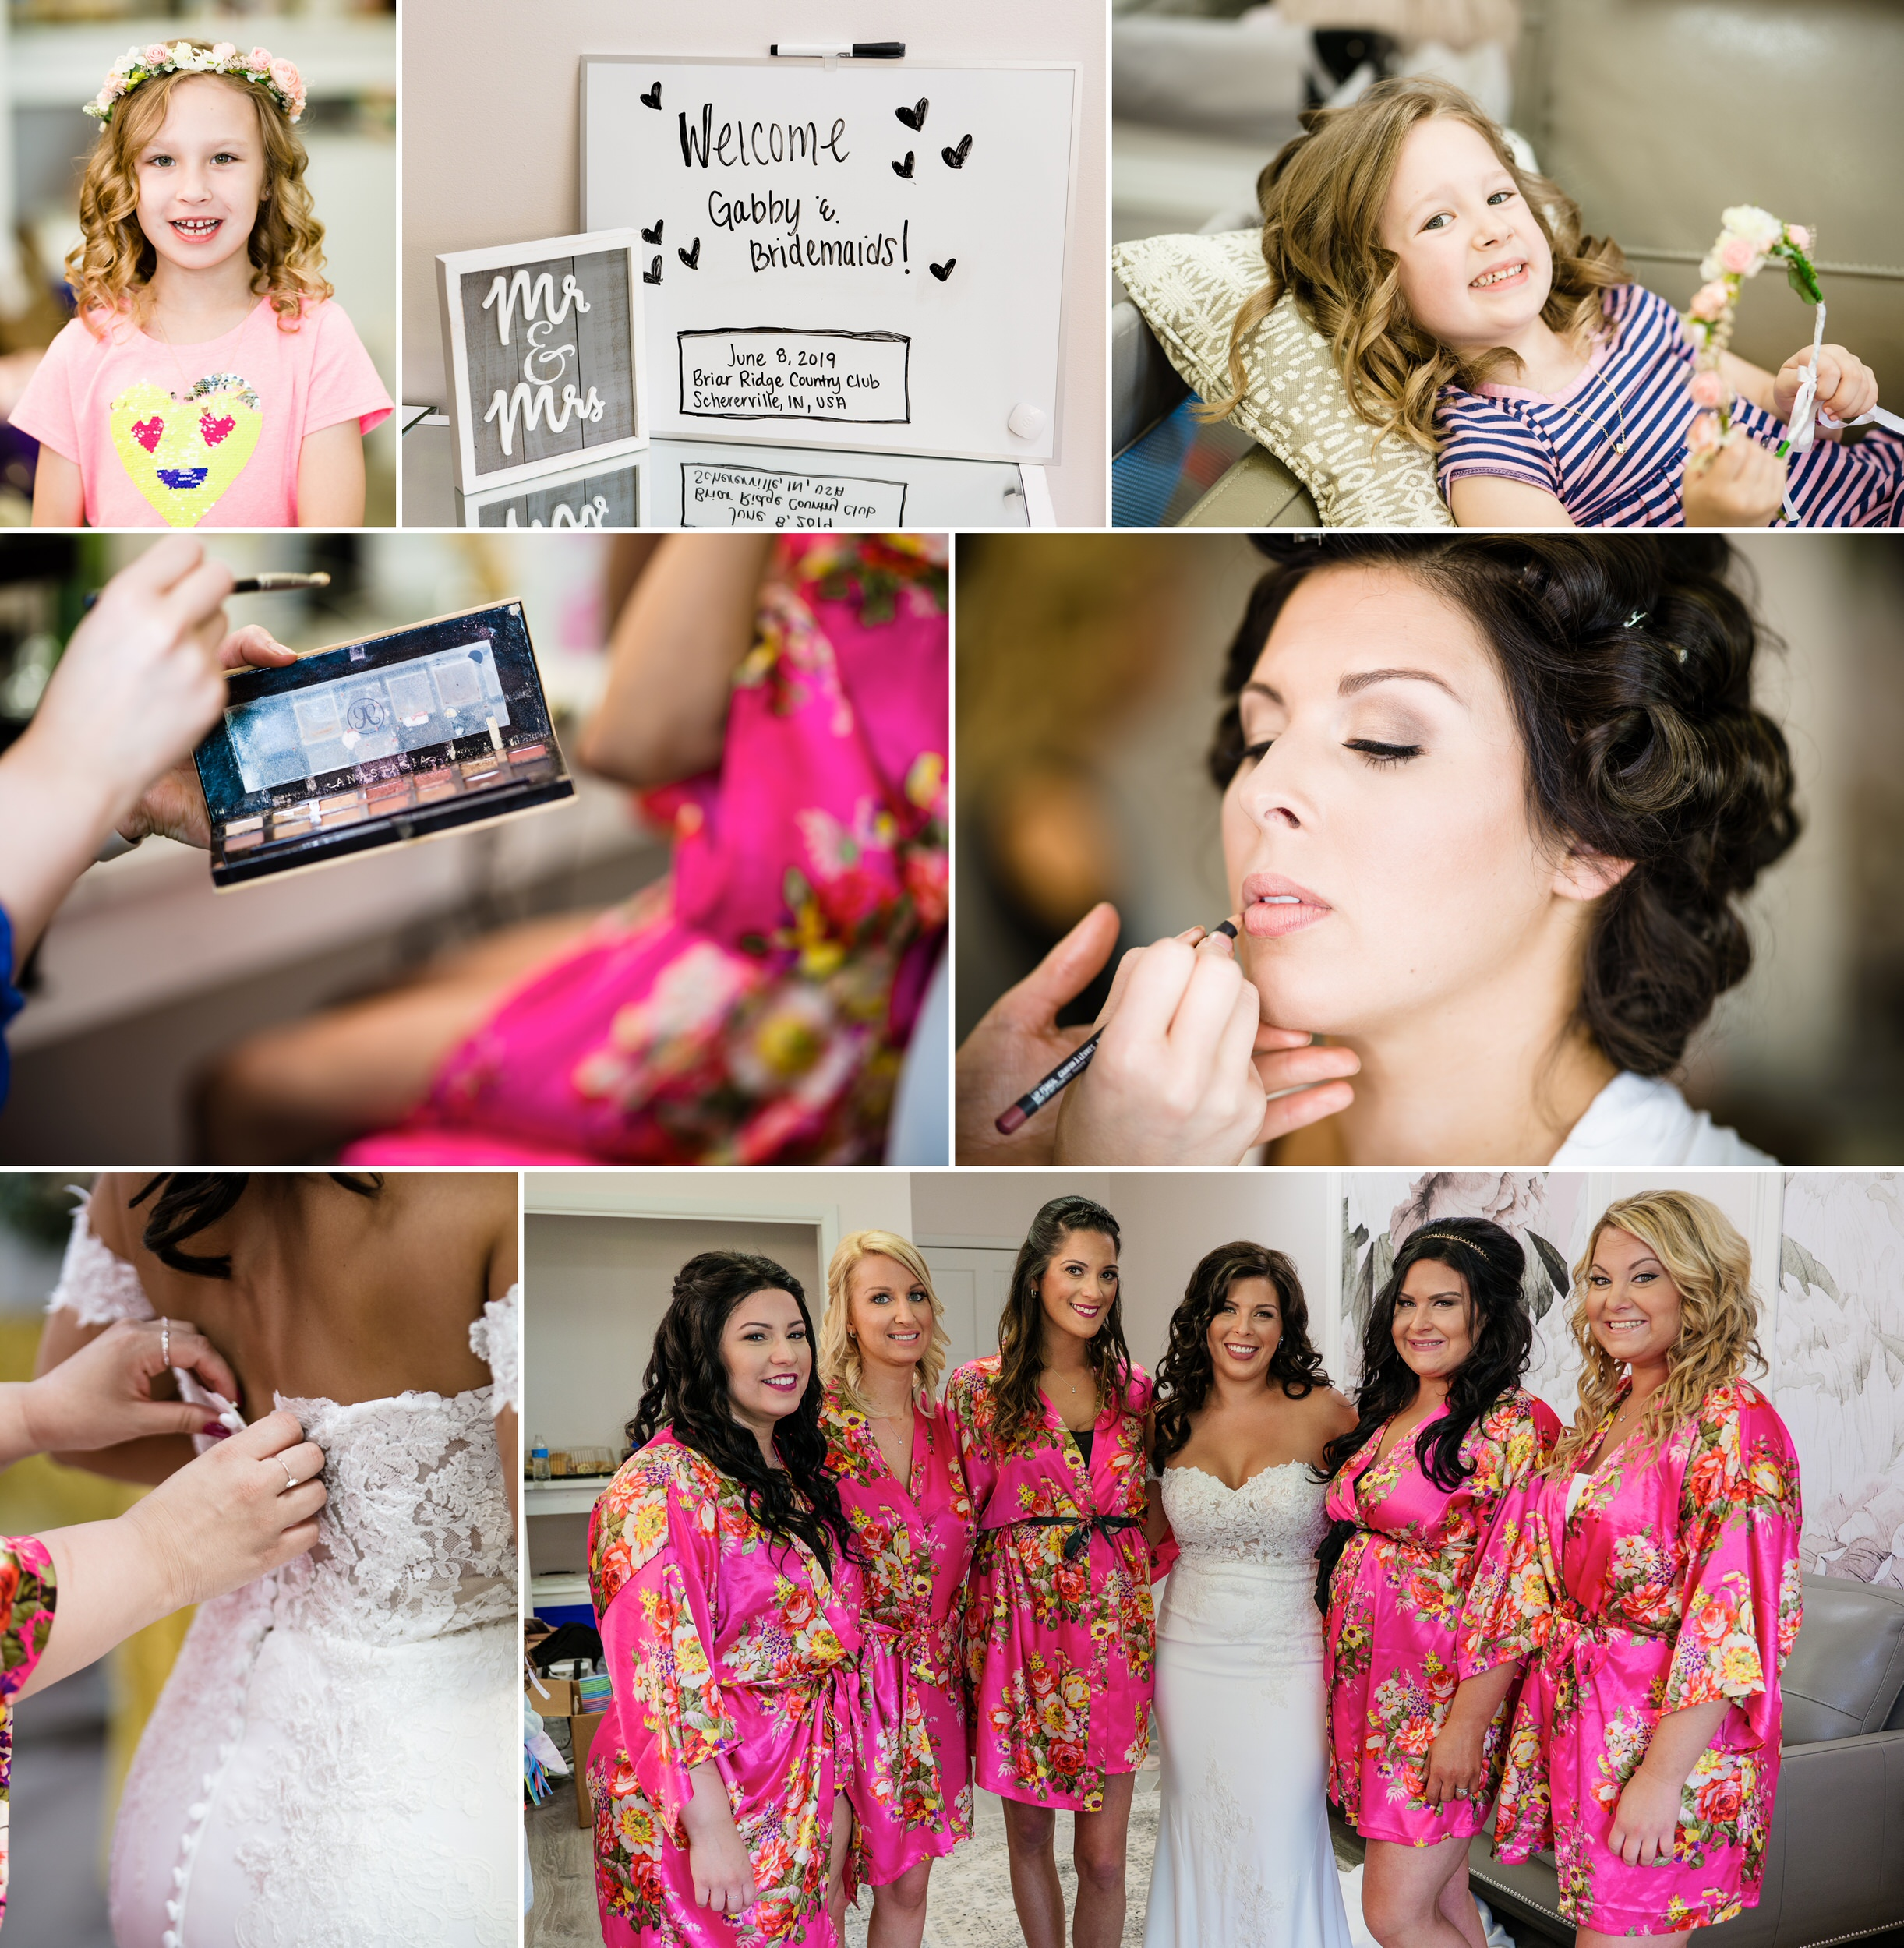 The bride and bridesmaids get ready inside the new bridal suite at Briar Ridge Country Club.